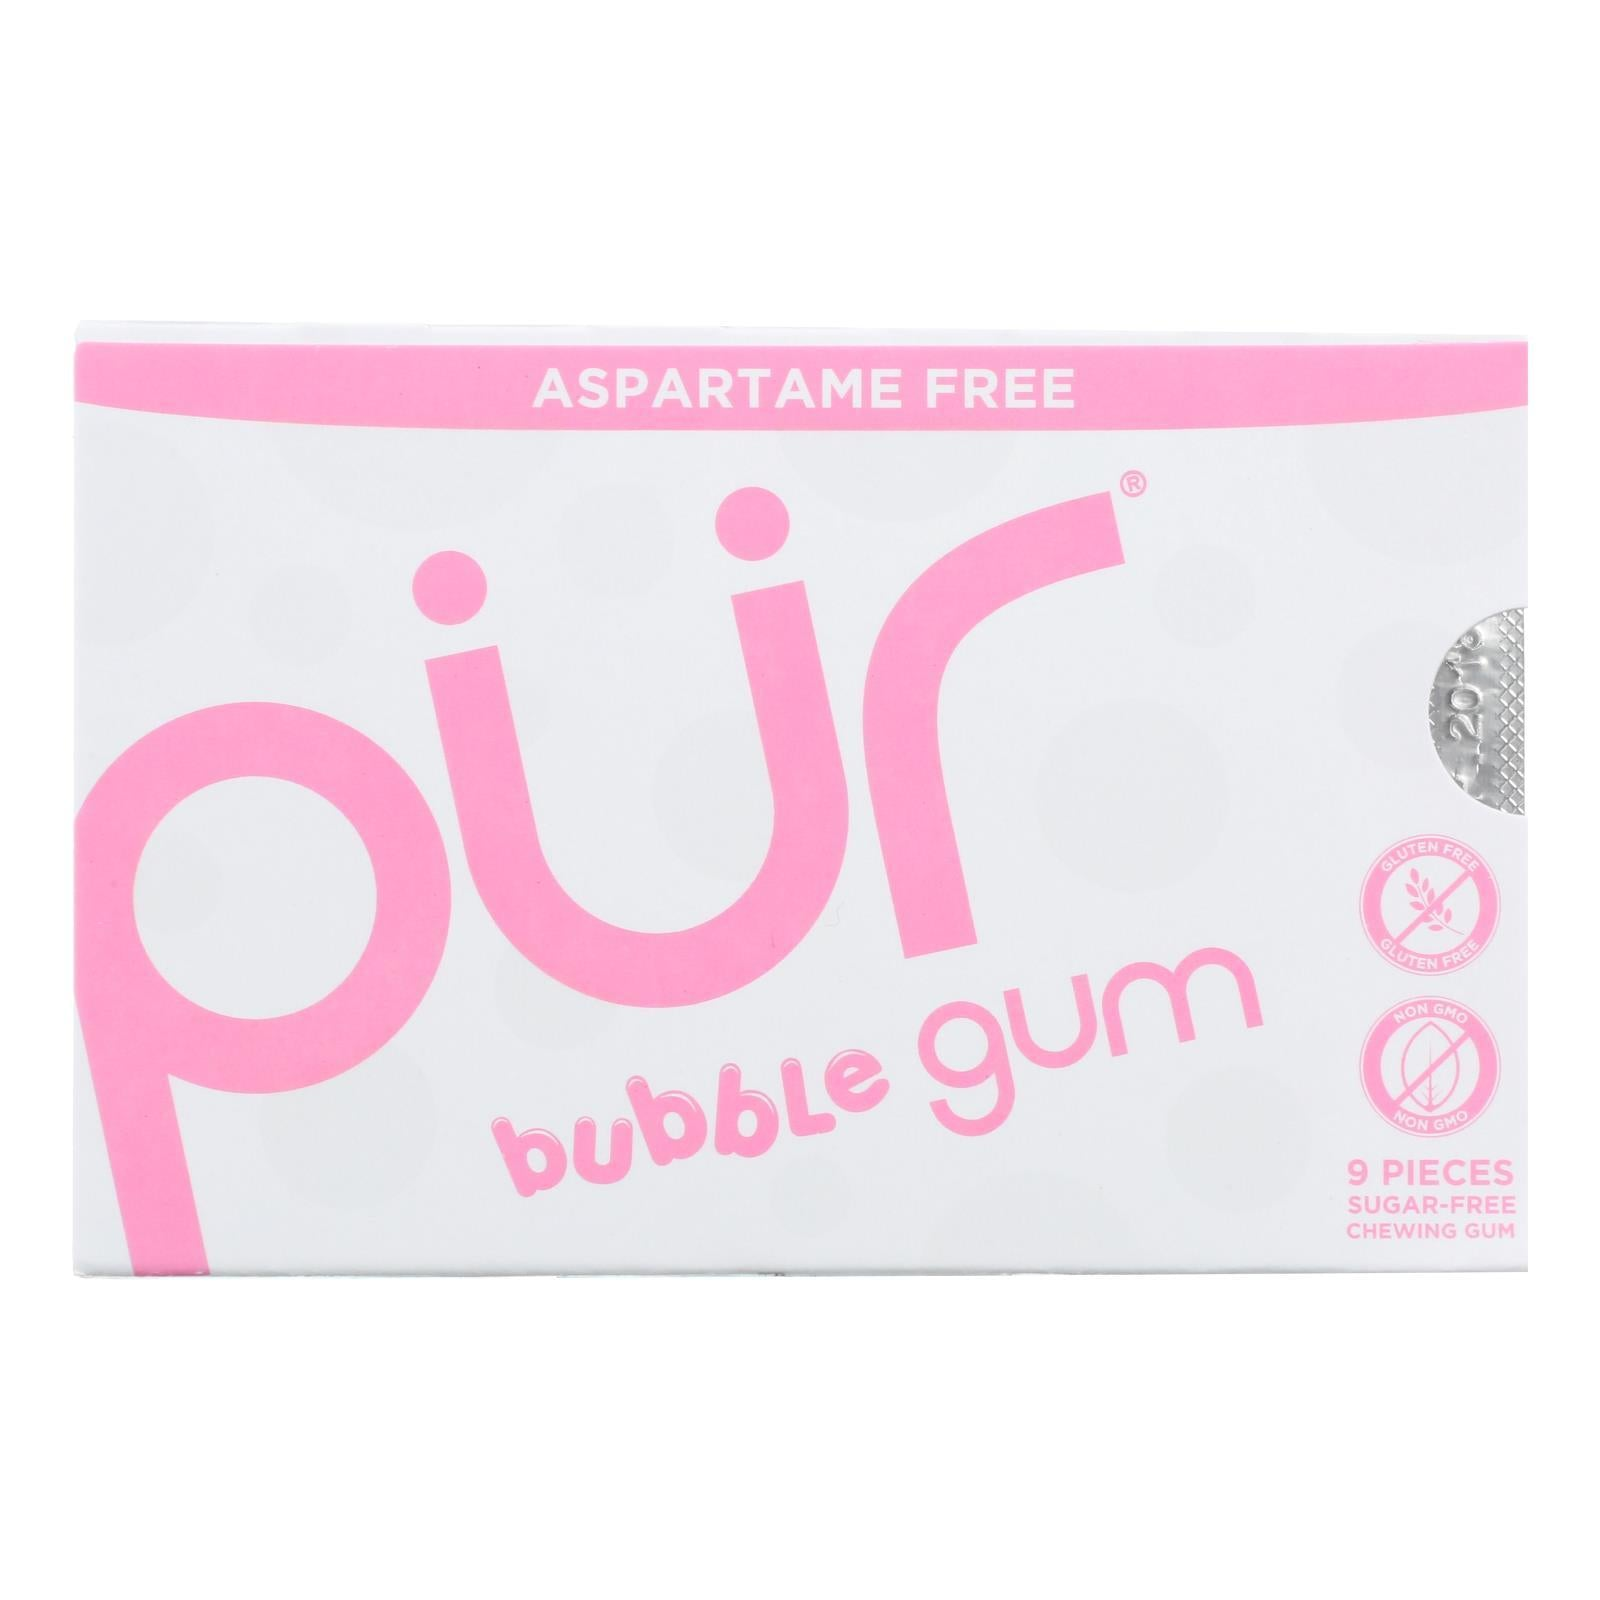 Pur Gum Bubble Gum - Sugar Free - Case Of 12 - 9 Count - BeeGreen